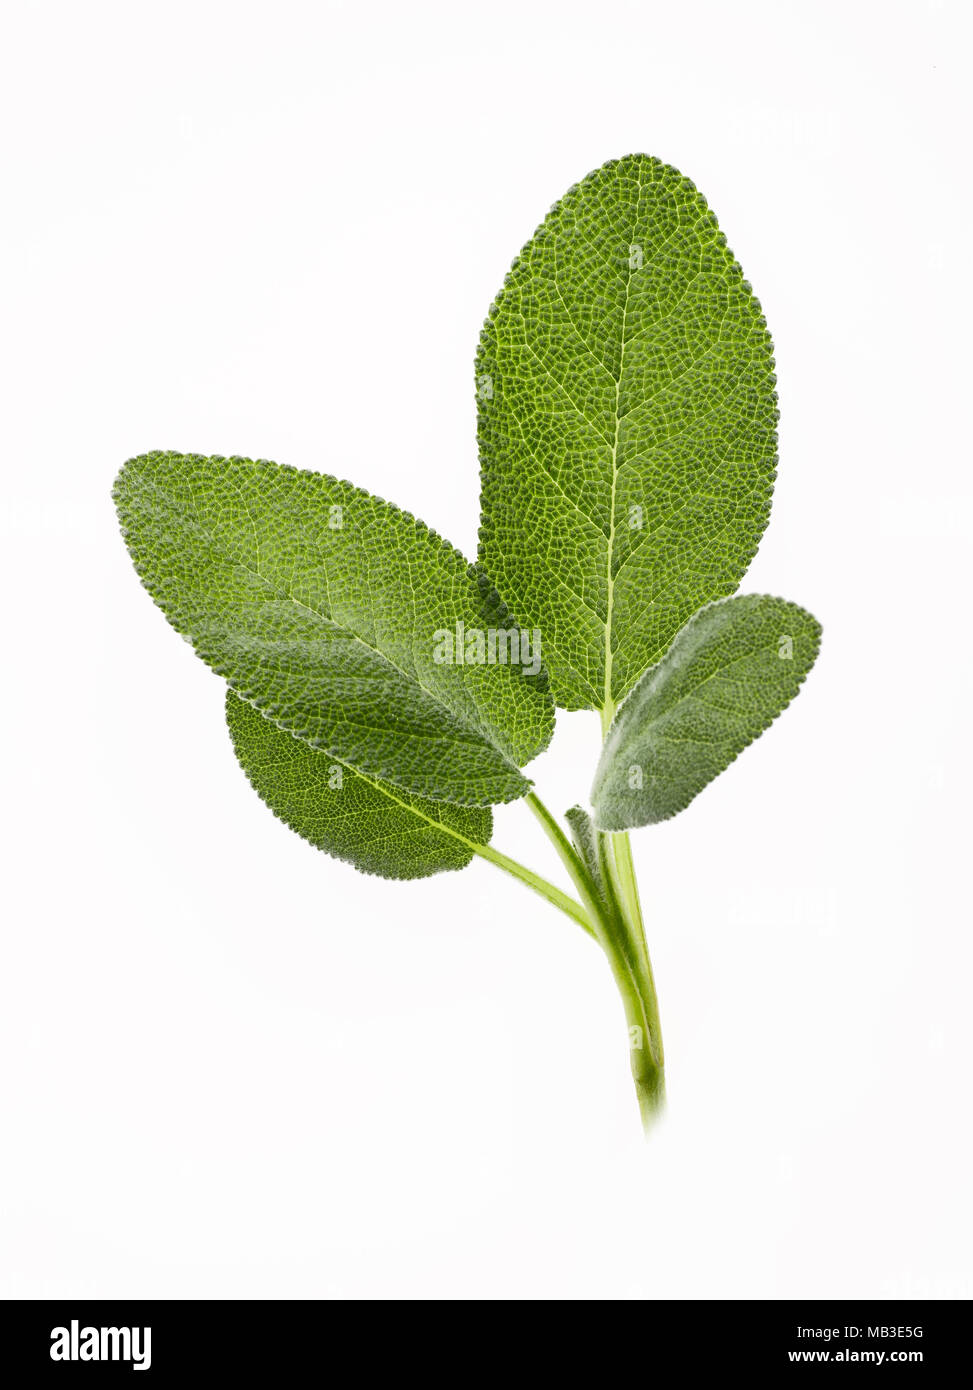 Sprig of Fresh Sage Herb - Stock Image